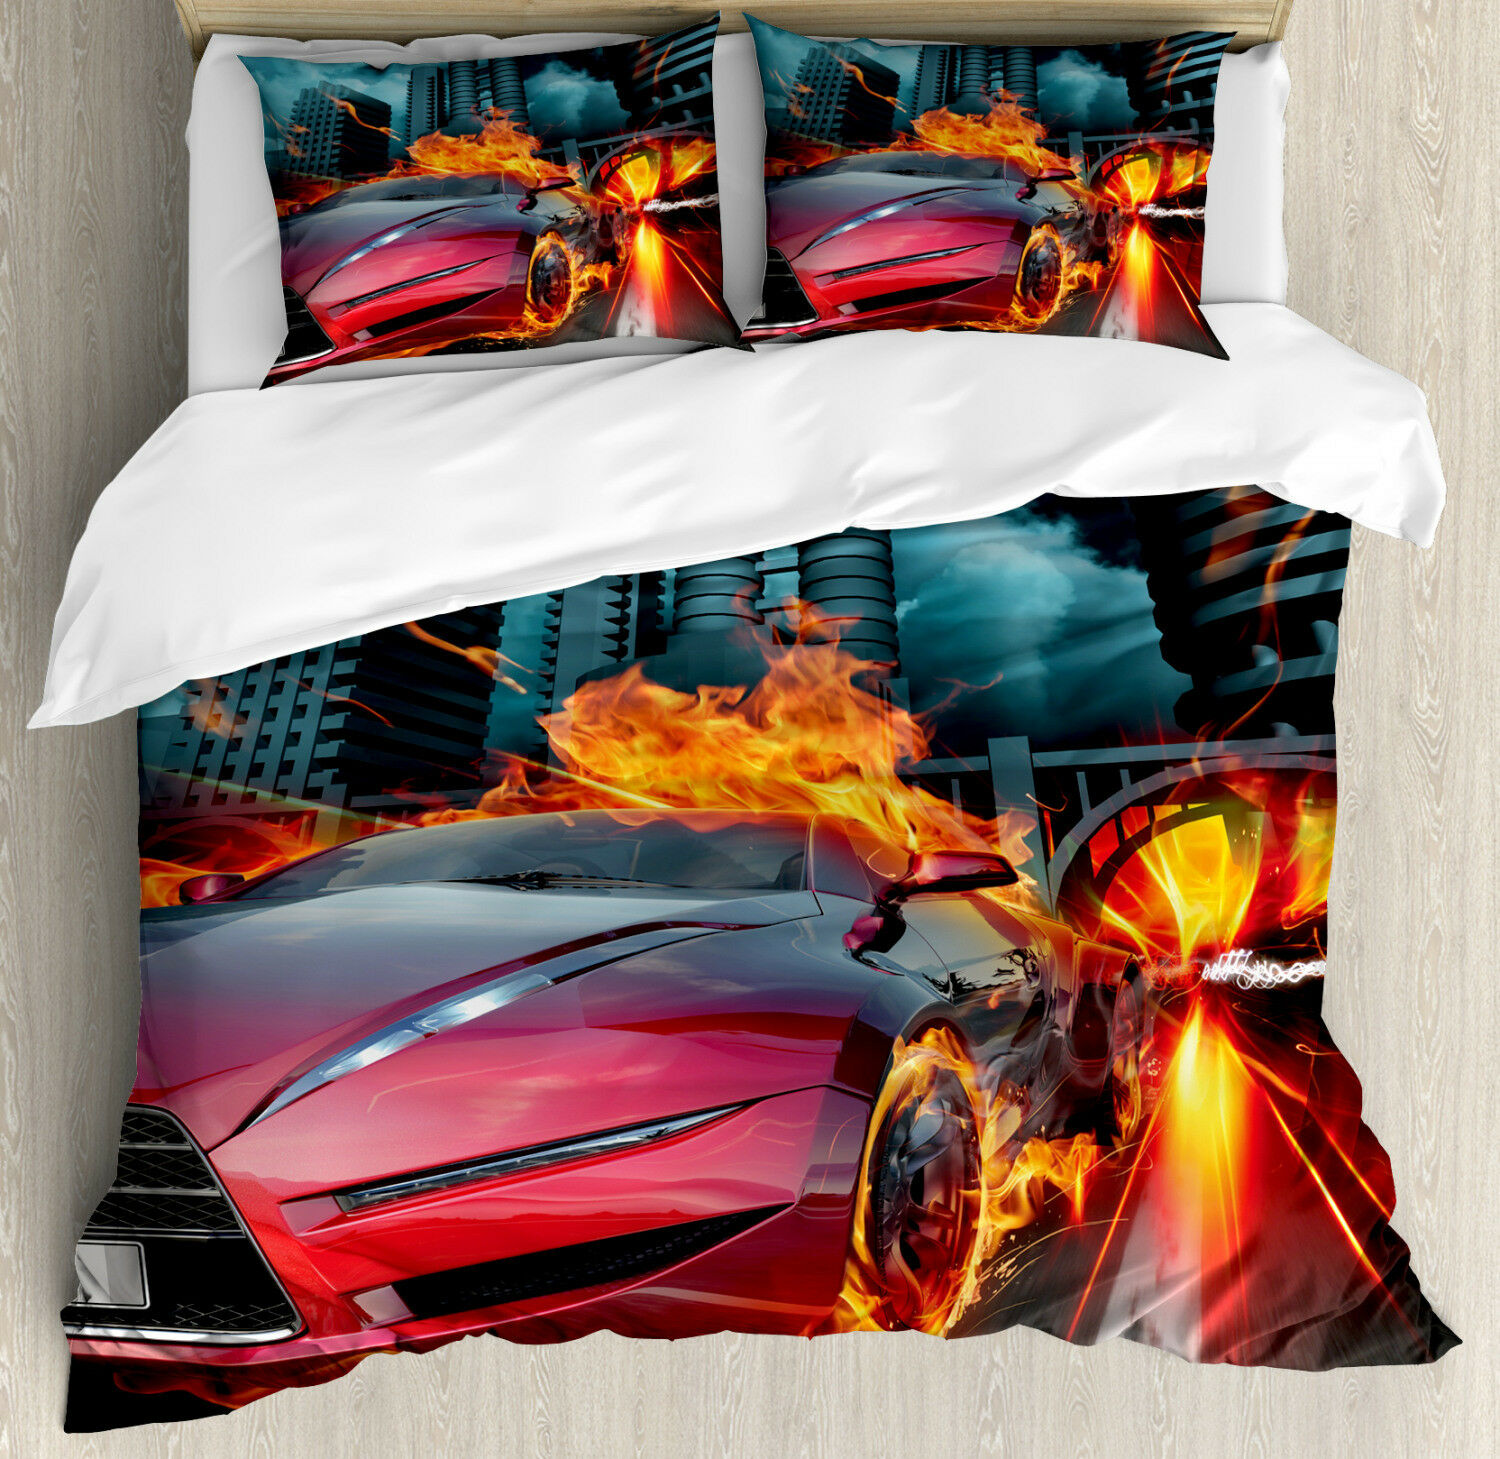 Cars Duvet Cover Set with Pillow Shams rosso Hot Concept Car Flames Print